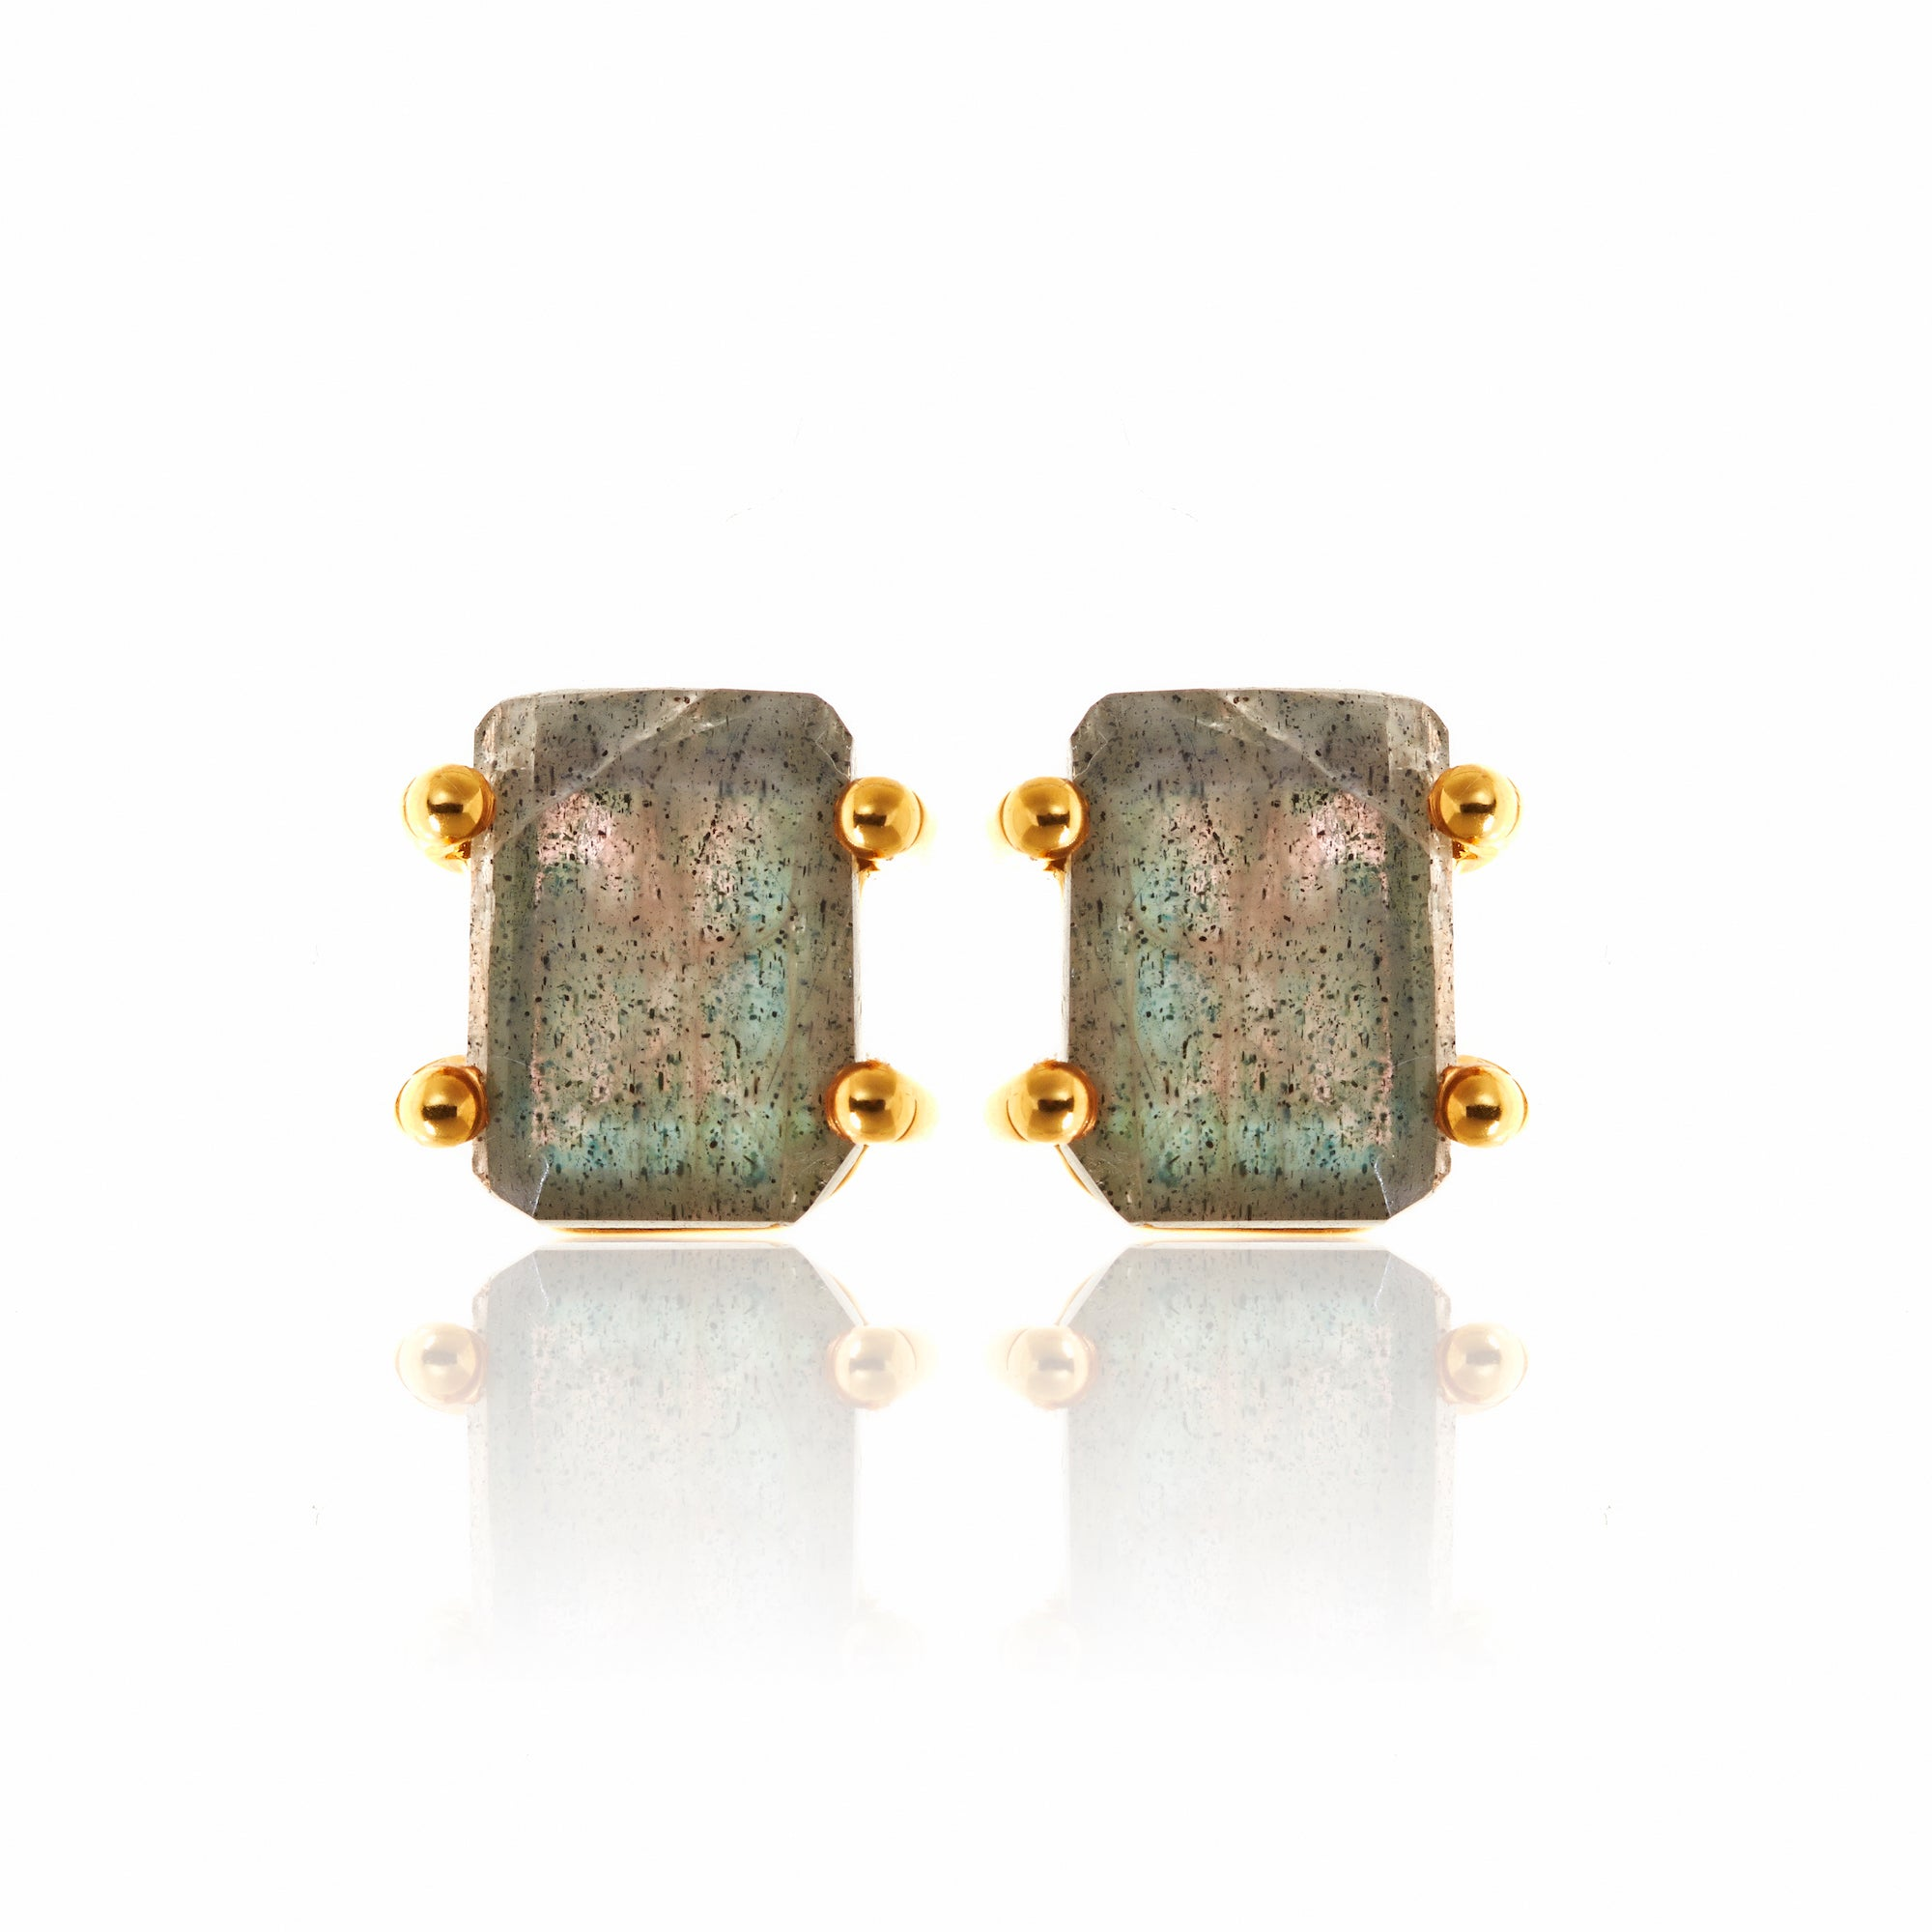 Silk&Steel Jewellery Prima Donna Labradorite and Gold Earrings La Dolce Vita